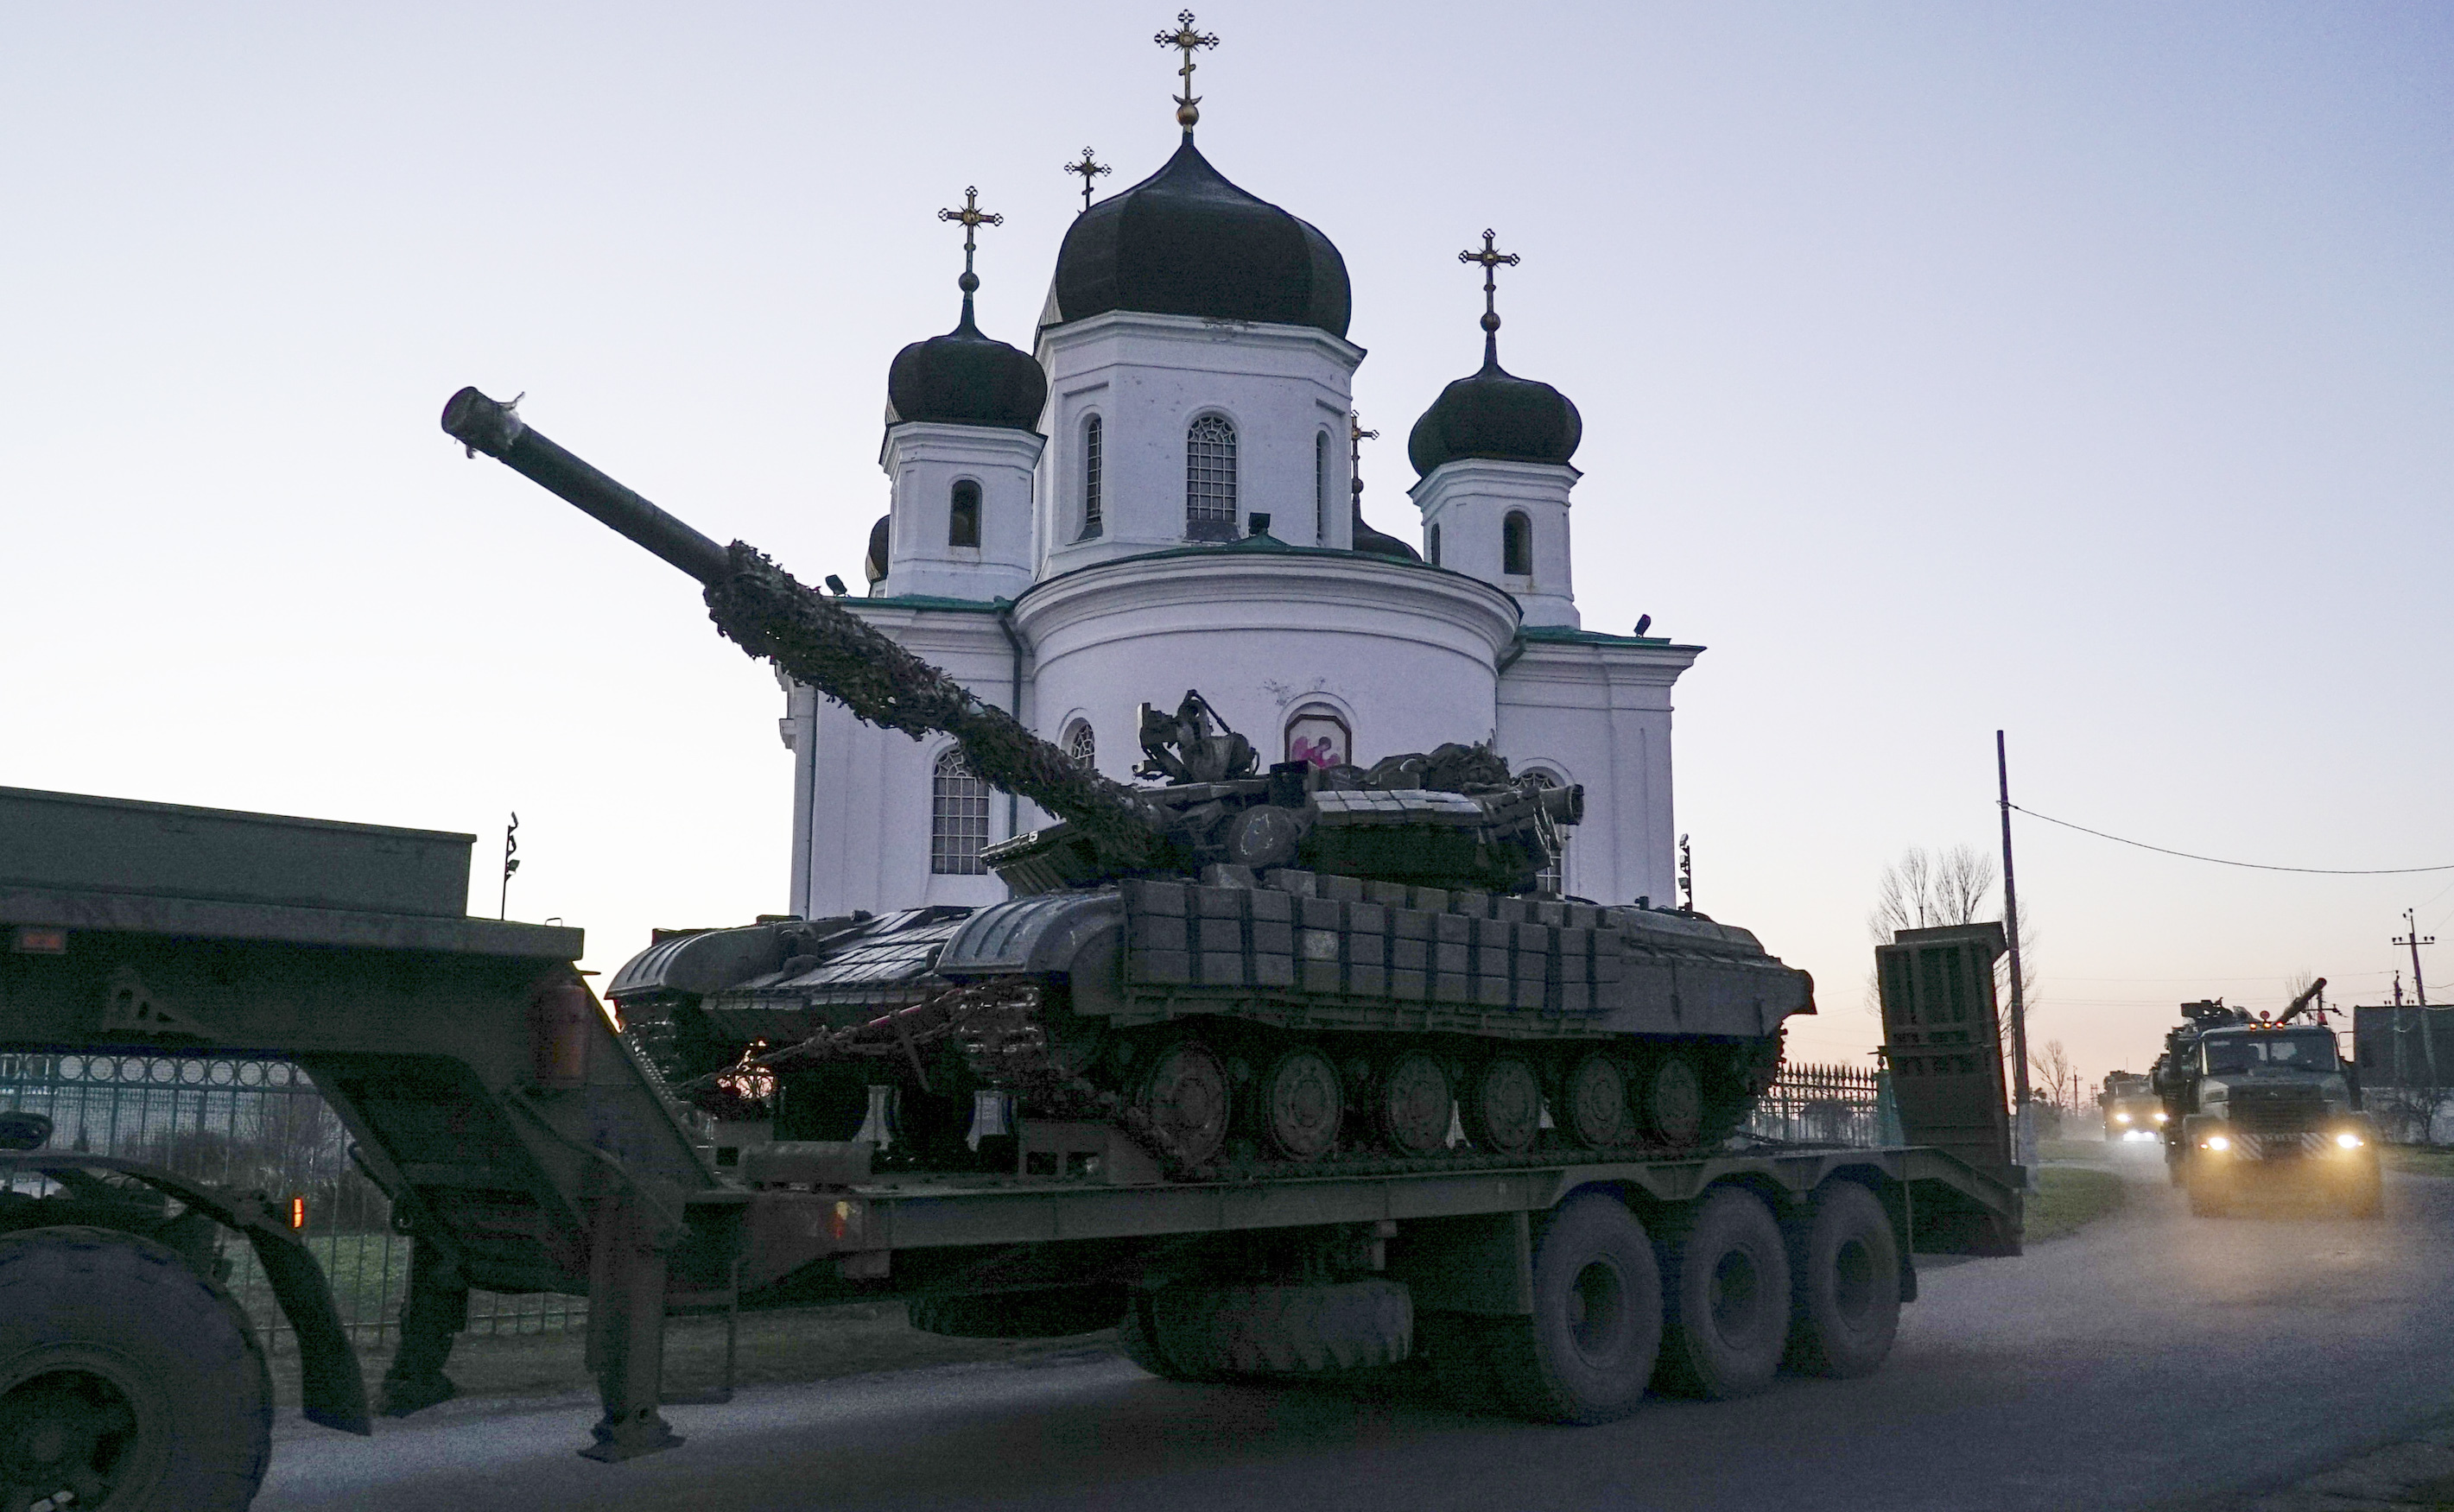 Ukrainian tanks are being transported in Urzuf, south coast of Azov sea, eastern Ukraine, Thursday, Nov. 29, 2018. Ukraine put its military forces on high combat alert and announced martial law this week after Russian border guards fired on and seized three Ukrainian ships in the Black Sea. (AP Photo/Evgeniy Maloletka)